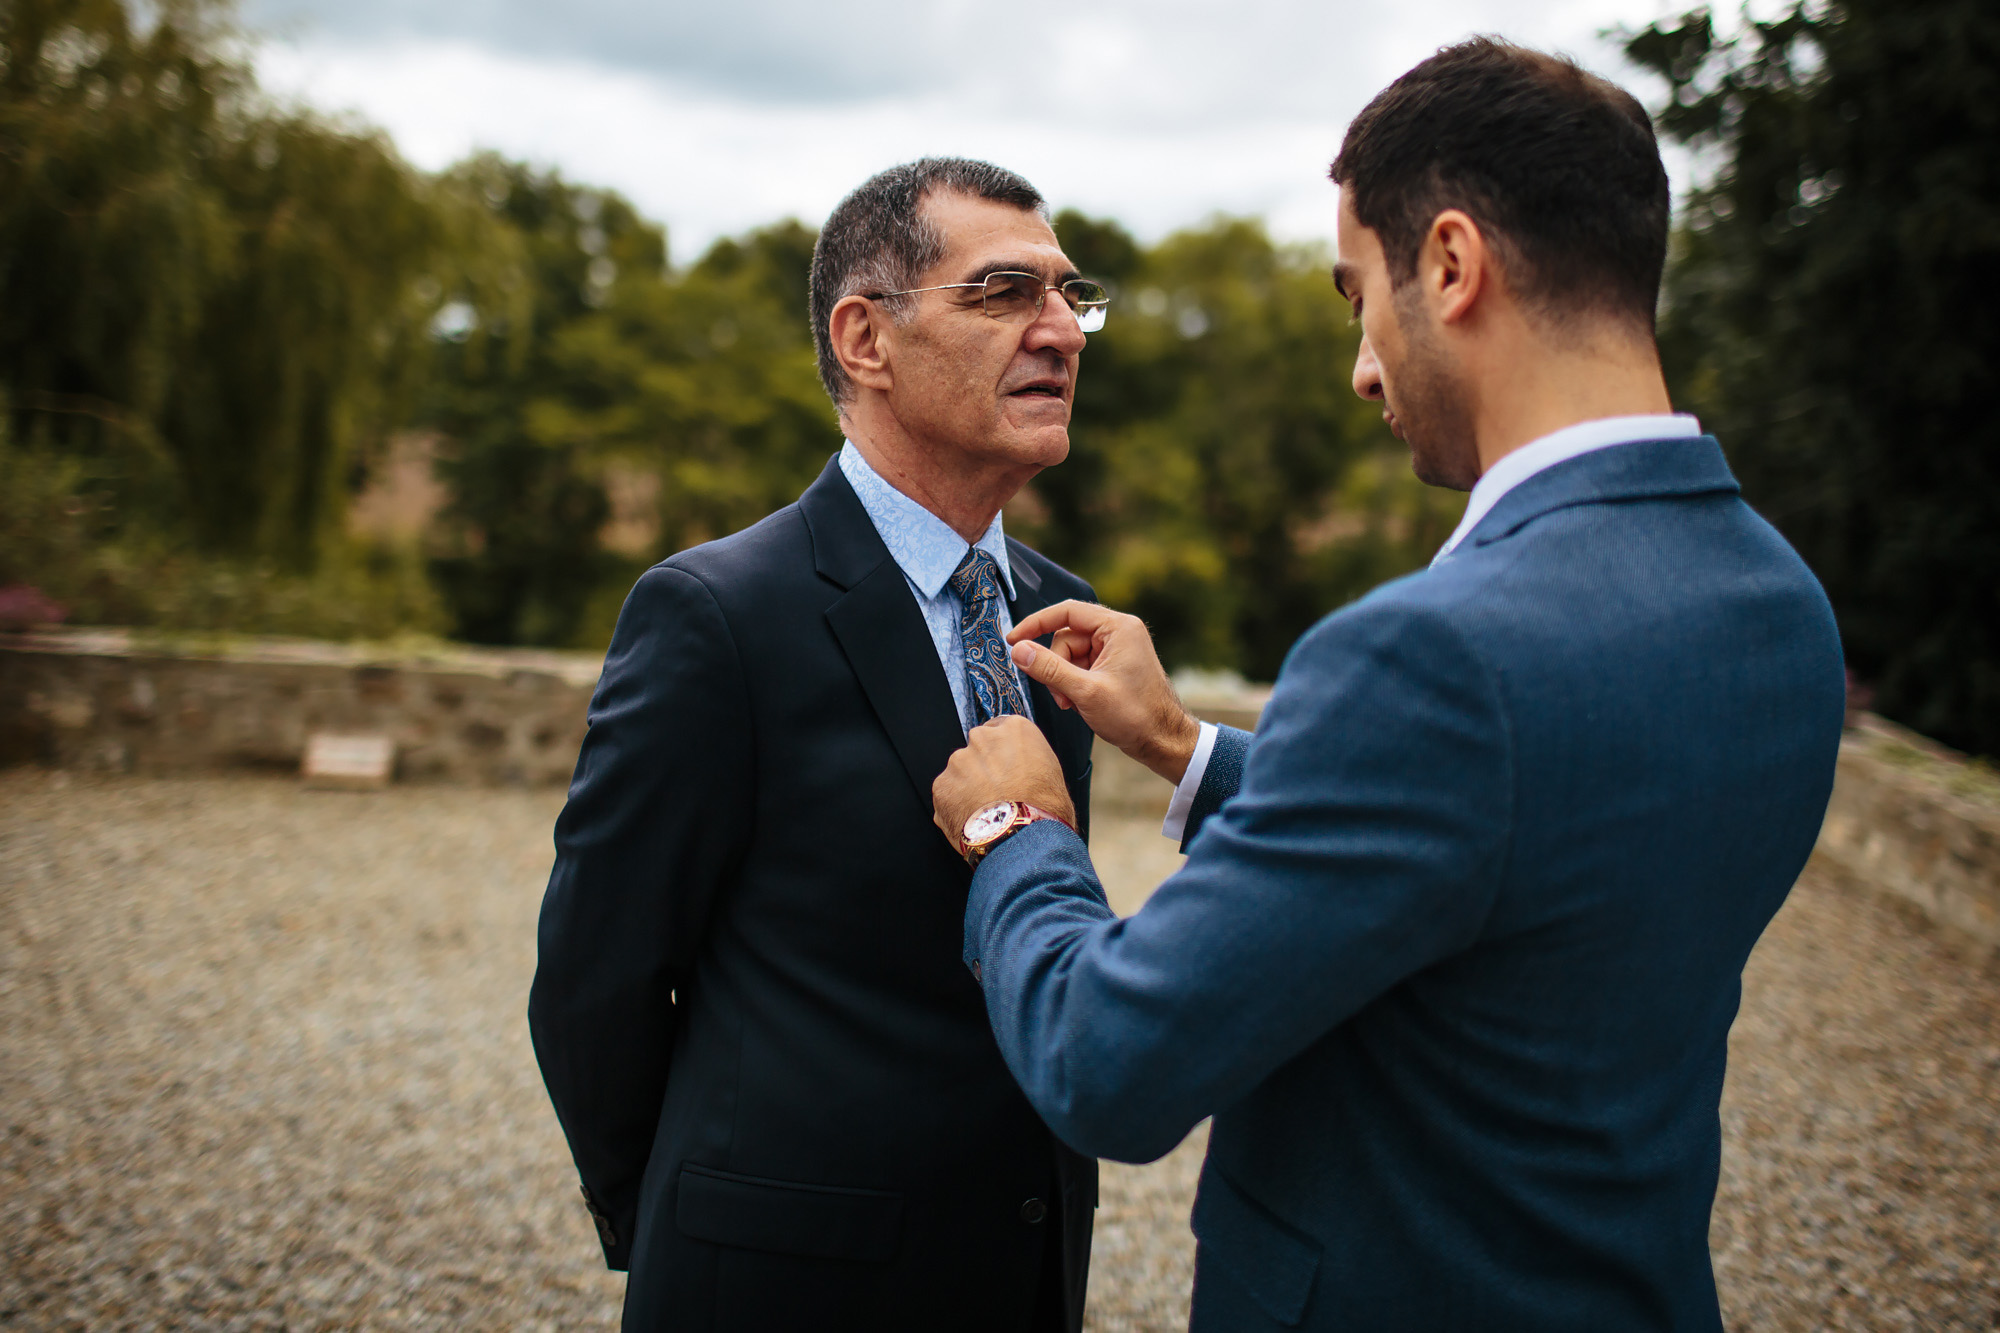 Groom adjusts fathers tie and suit for the wedding